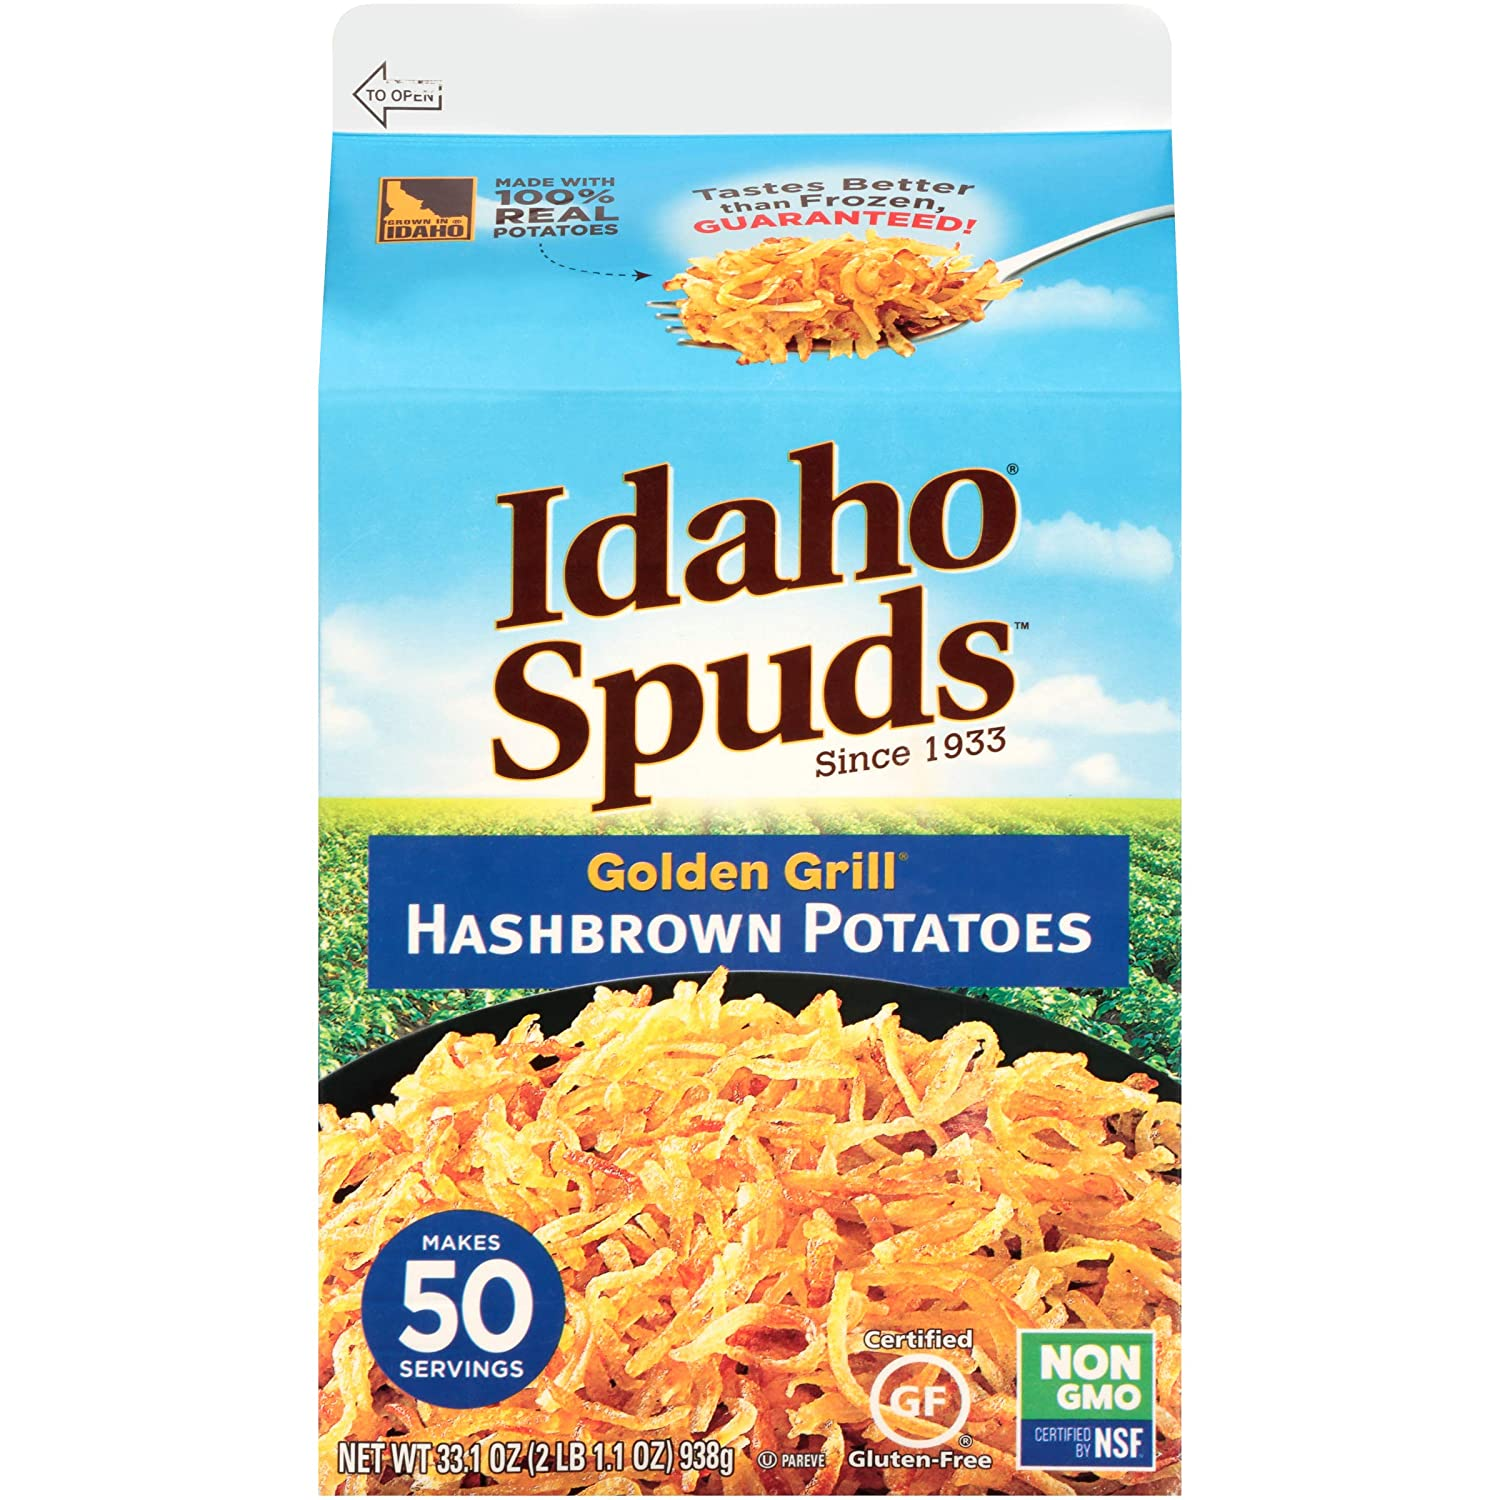 Idaho Spuds Premium Hashbrown Potatoes, 1 Gallon (1 Pack), Made from 100% Idaho Potatoes, No Artificial Colors or Flavors; Non-GMO Certified, Gluten Free & Kosher